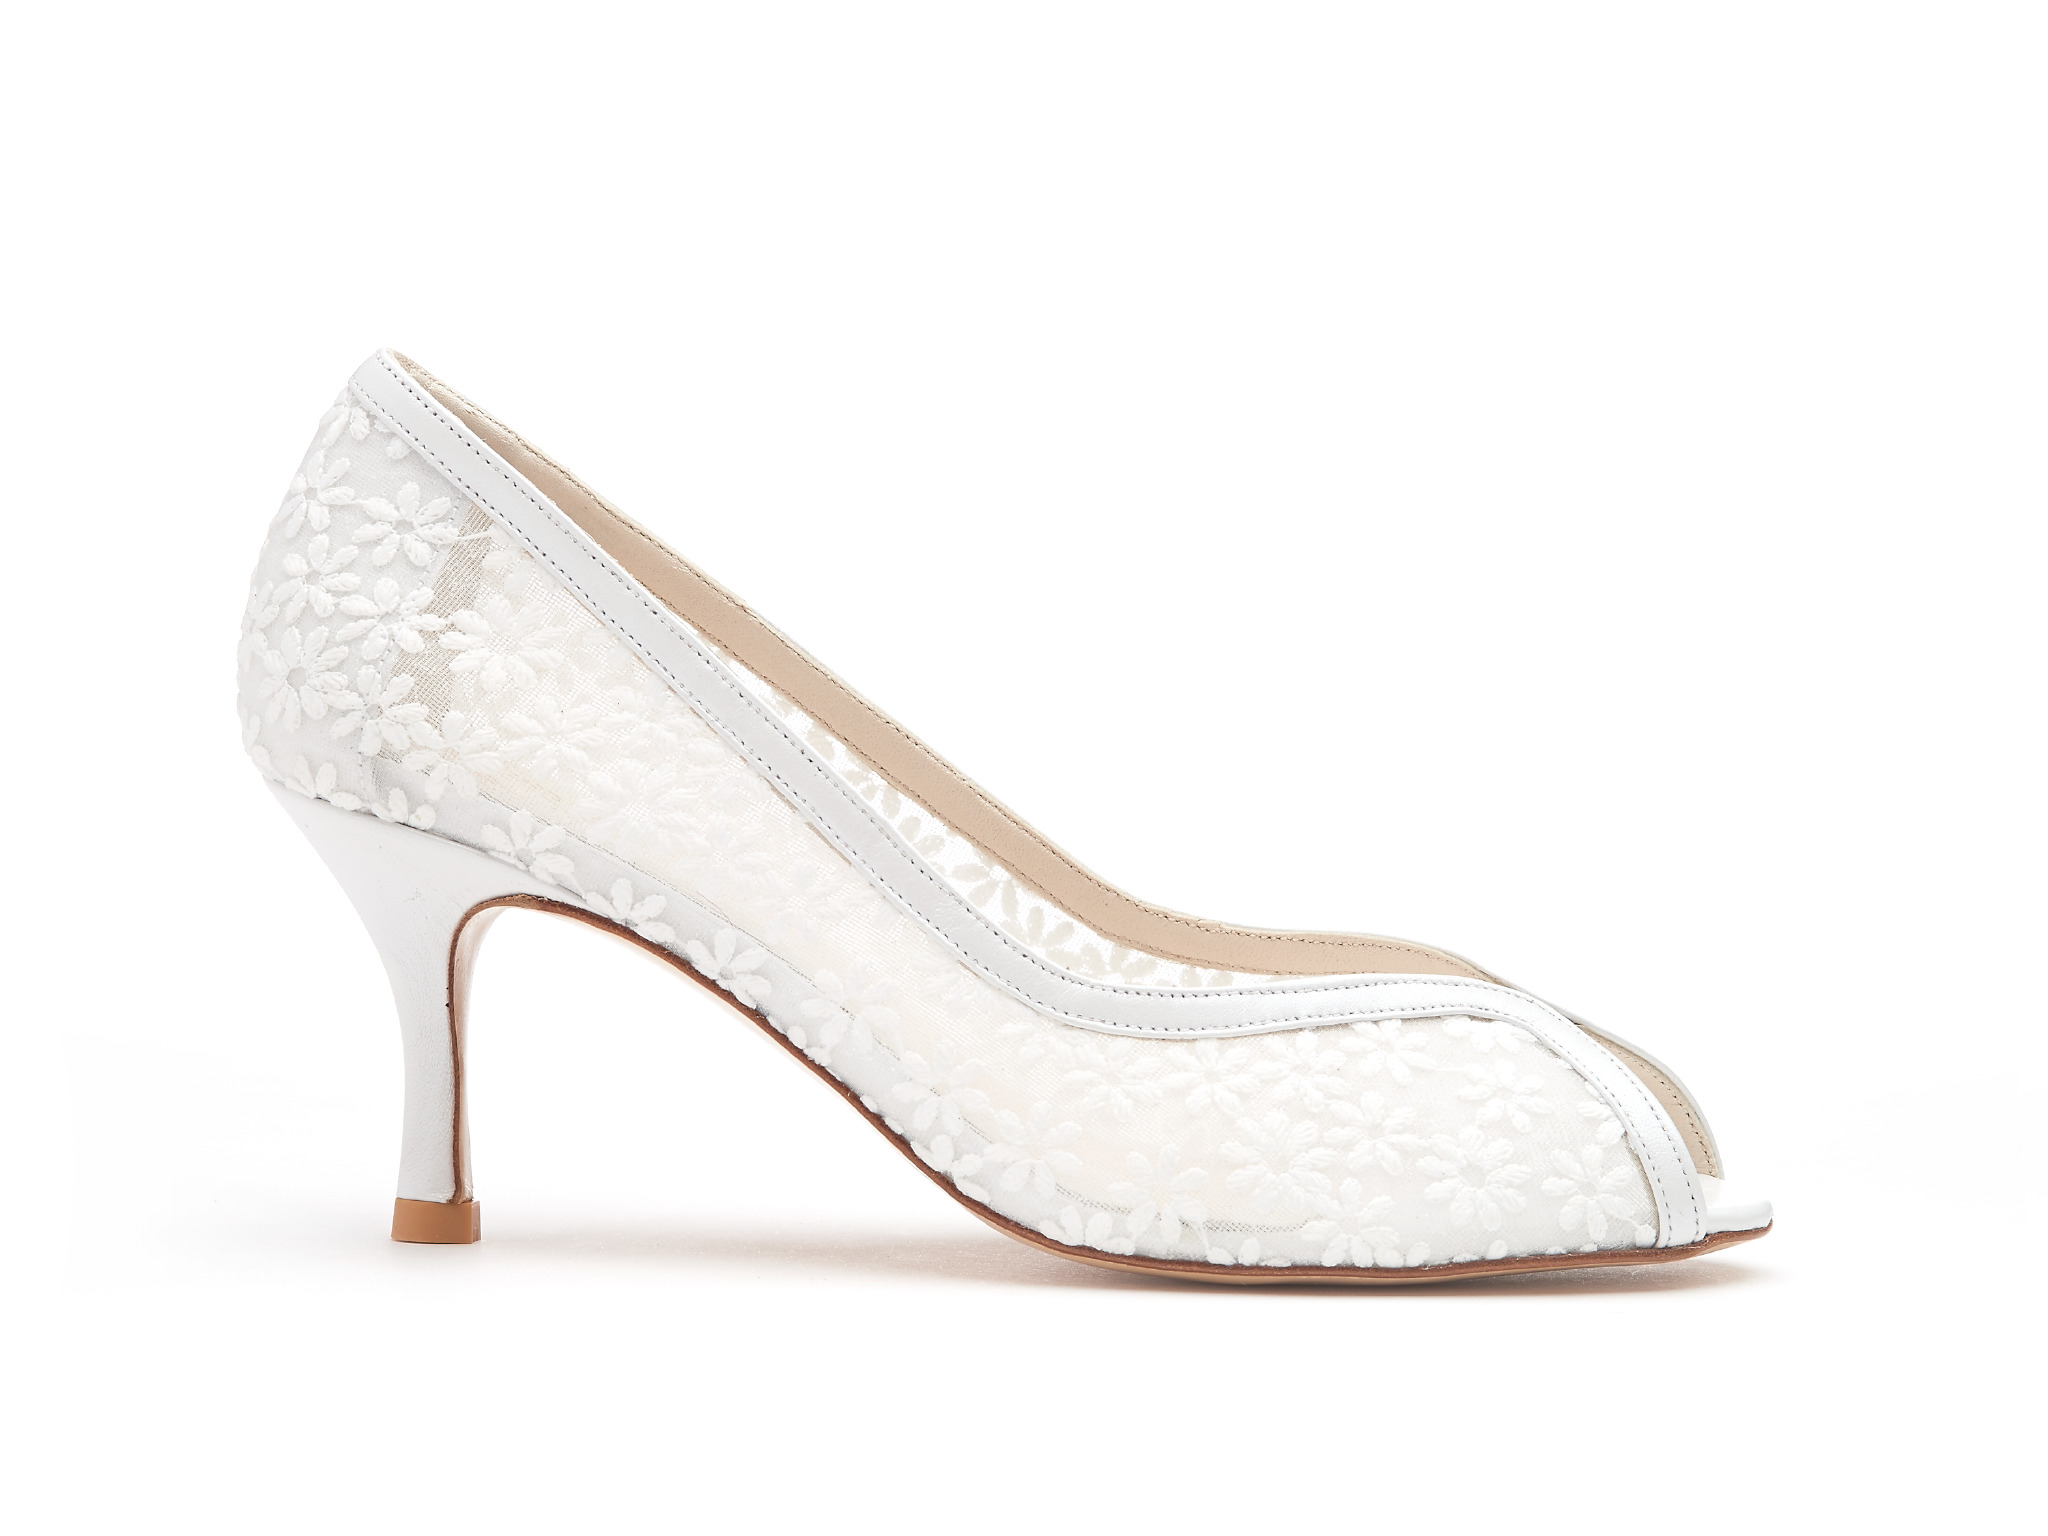 47f62753027a The end result is the perfect pair of shoes loving crafted to suit exactly  your specifications and a stunning addition to your wardrobe you can  treasure ...